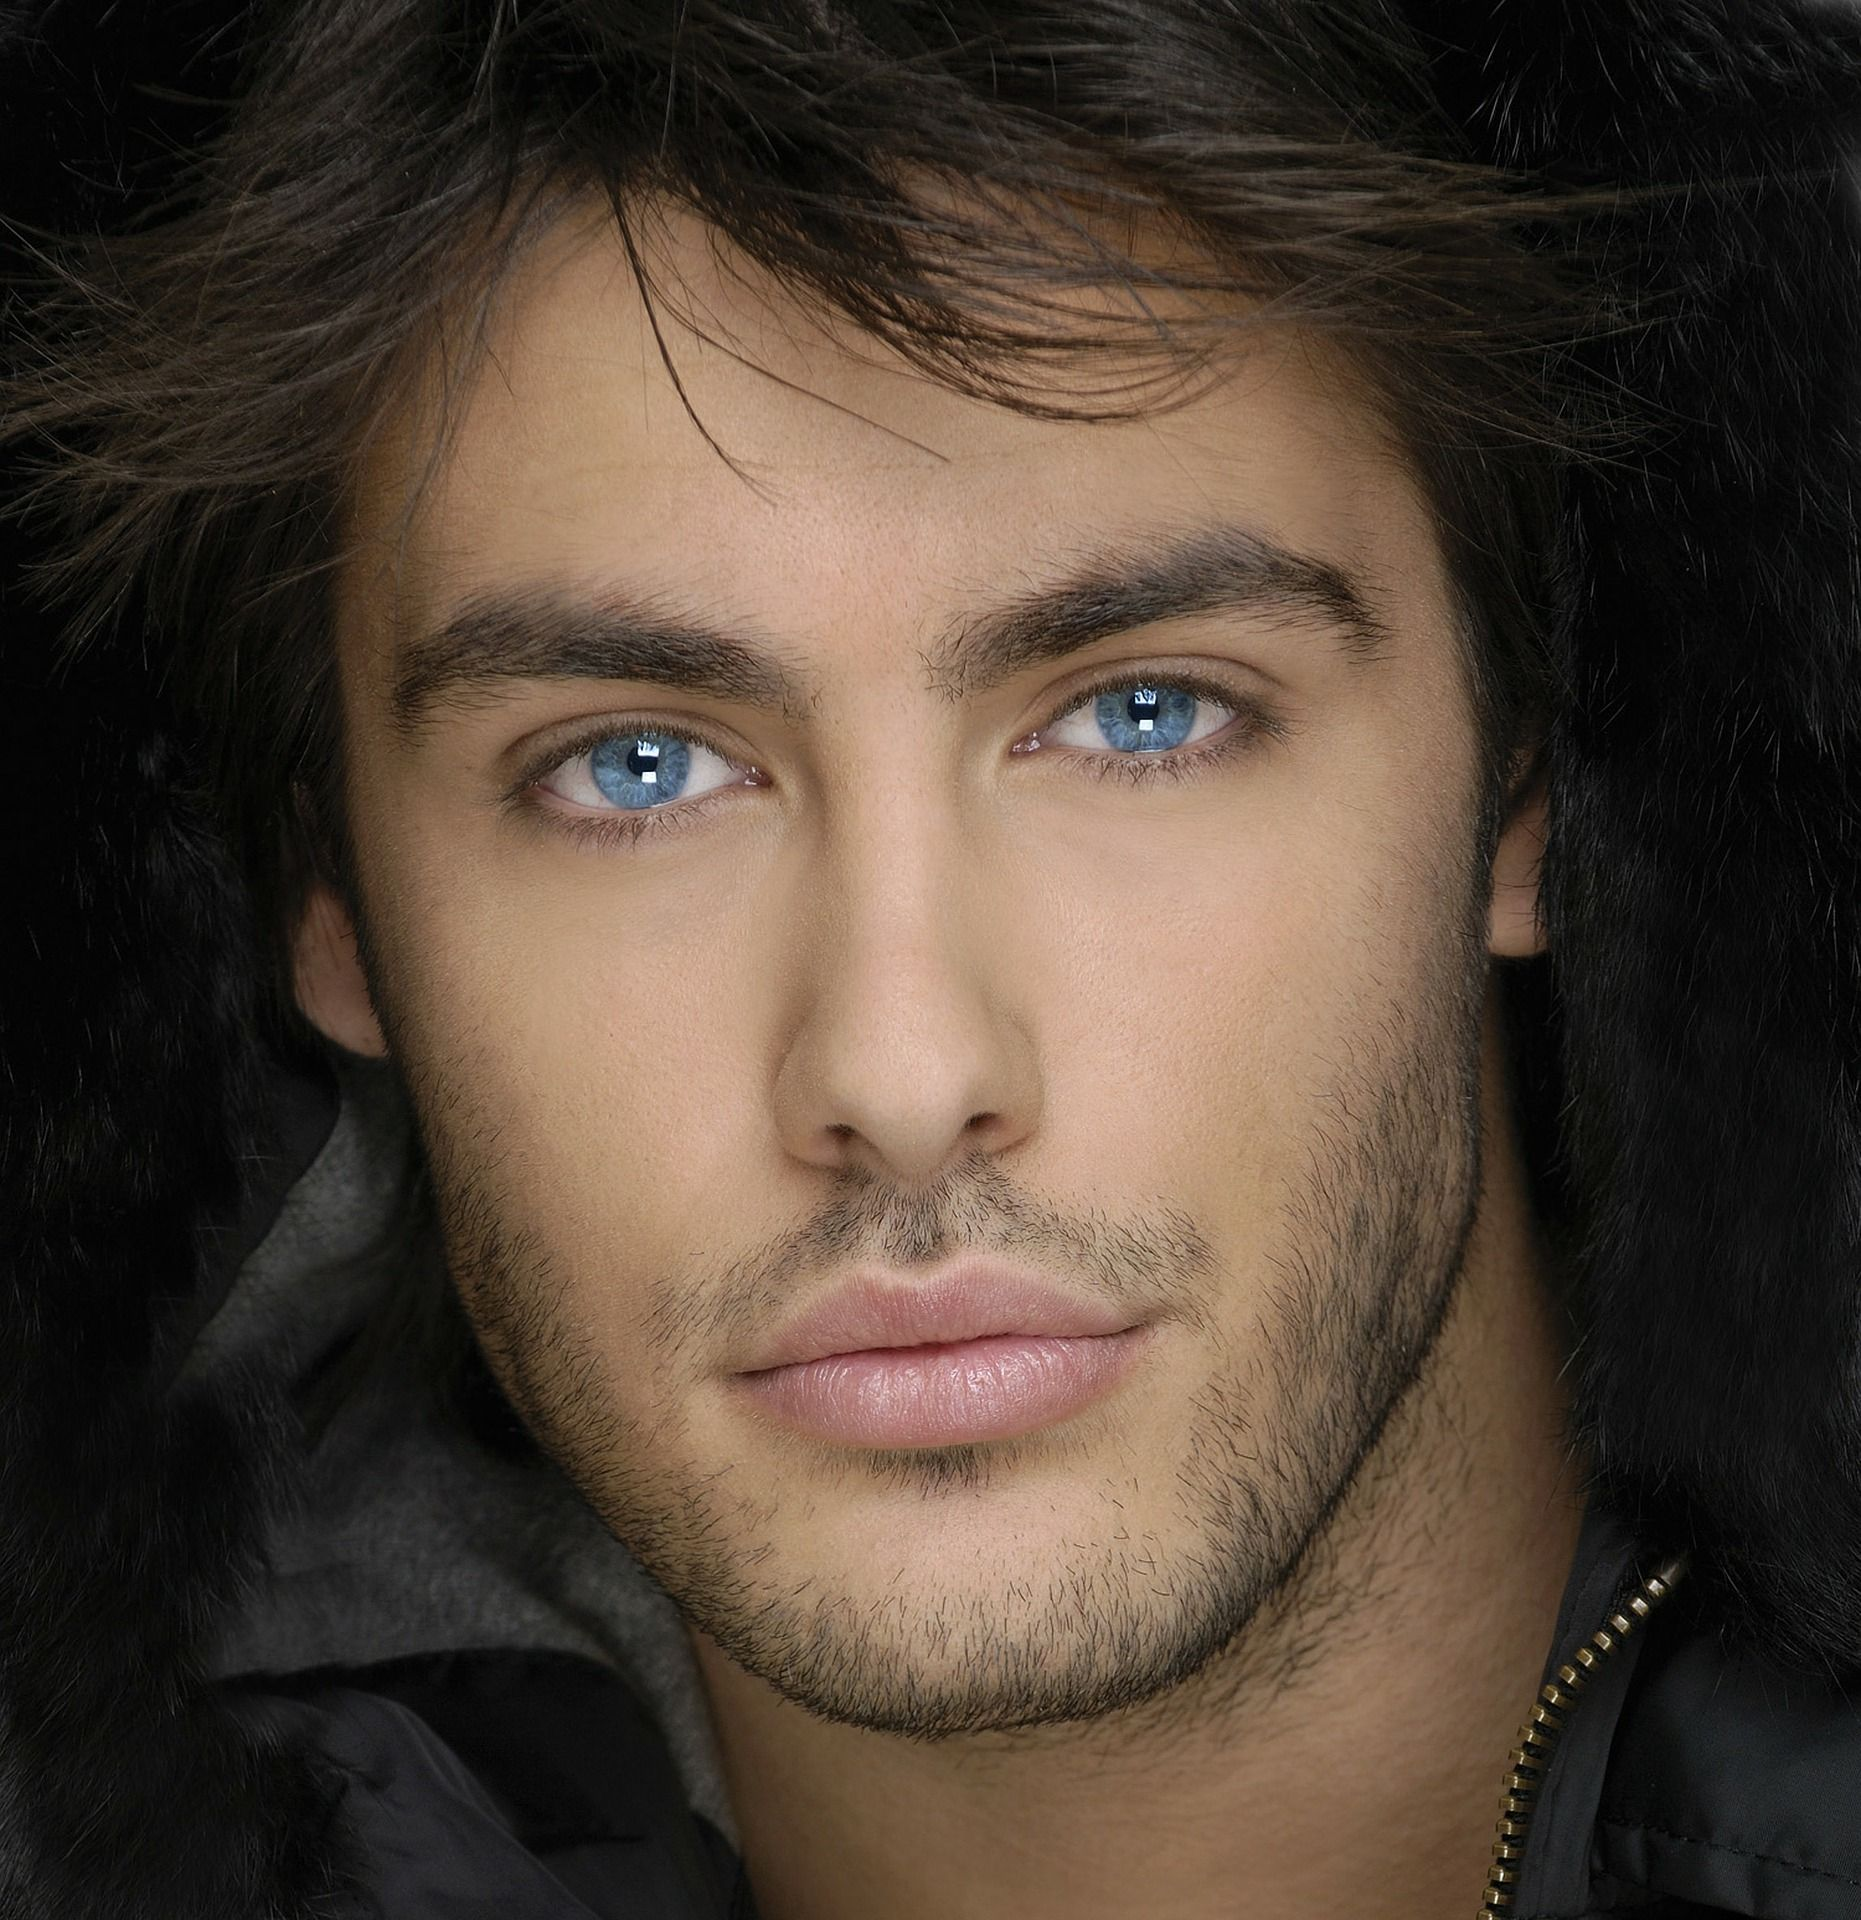 Top 10 Countries With Most Beautiful Eyes Eye Colors And